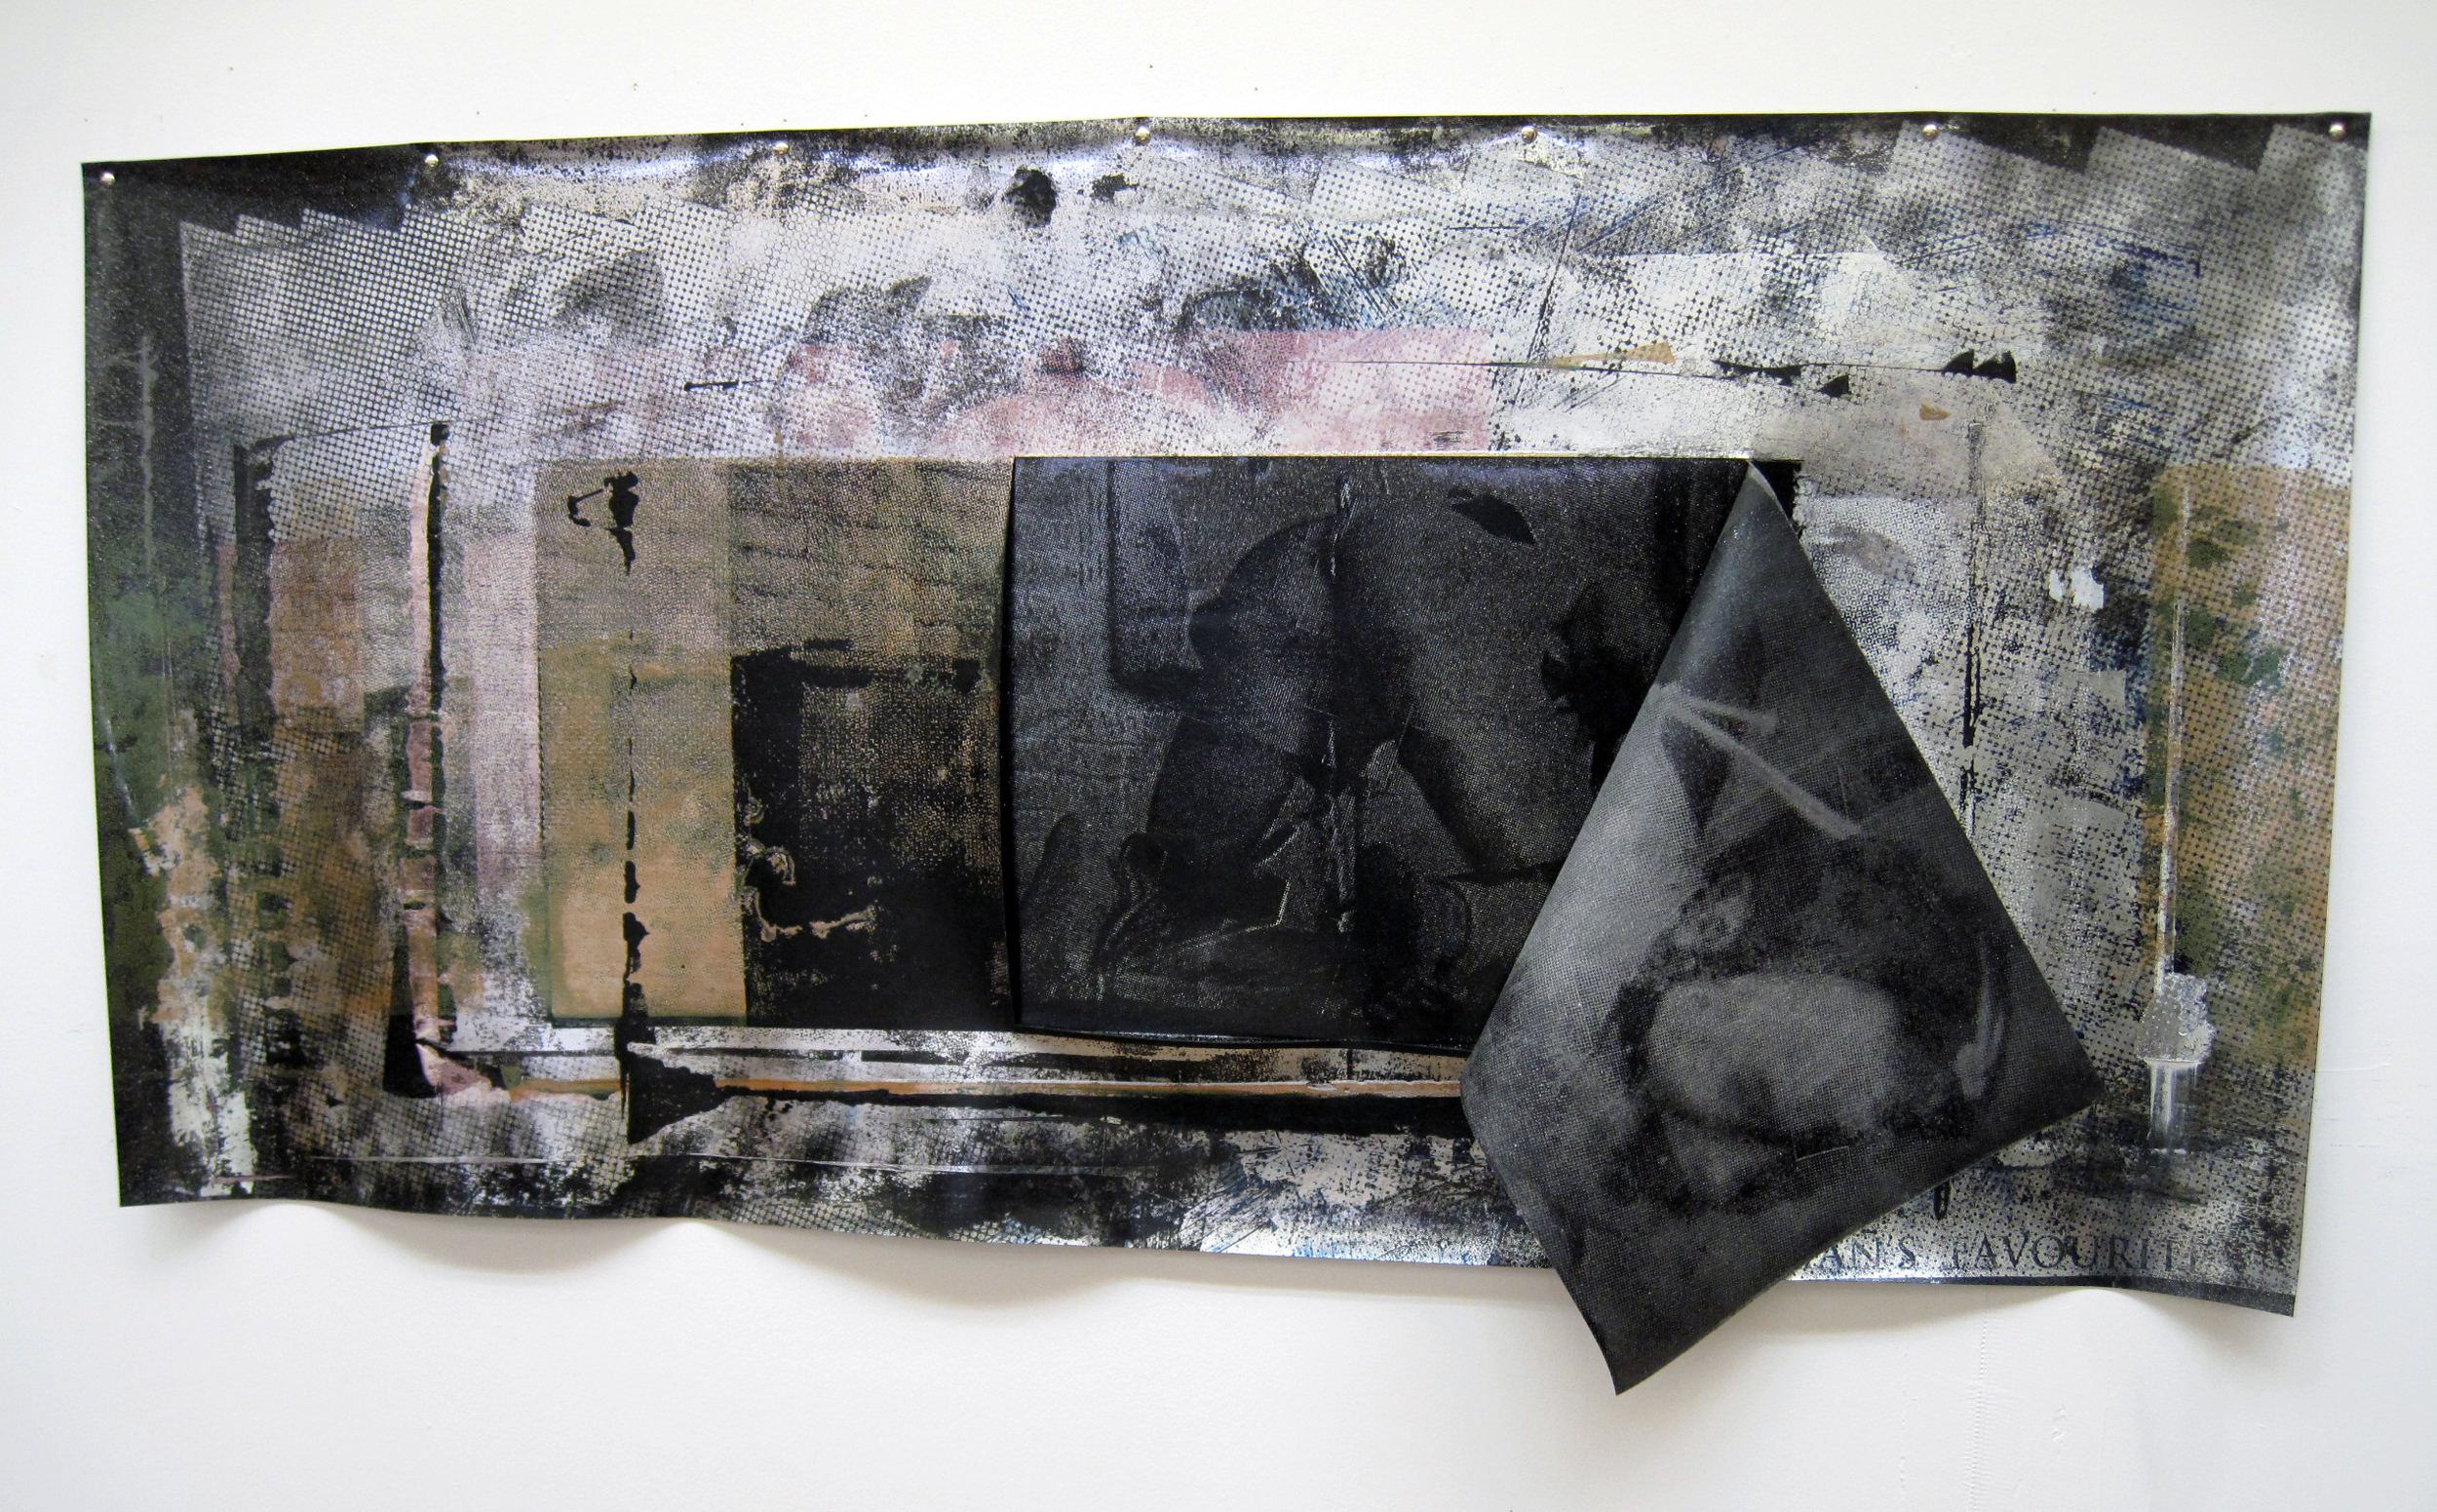 Willing/Unwilling, 2012